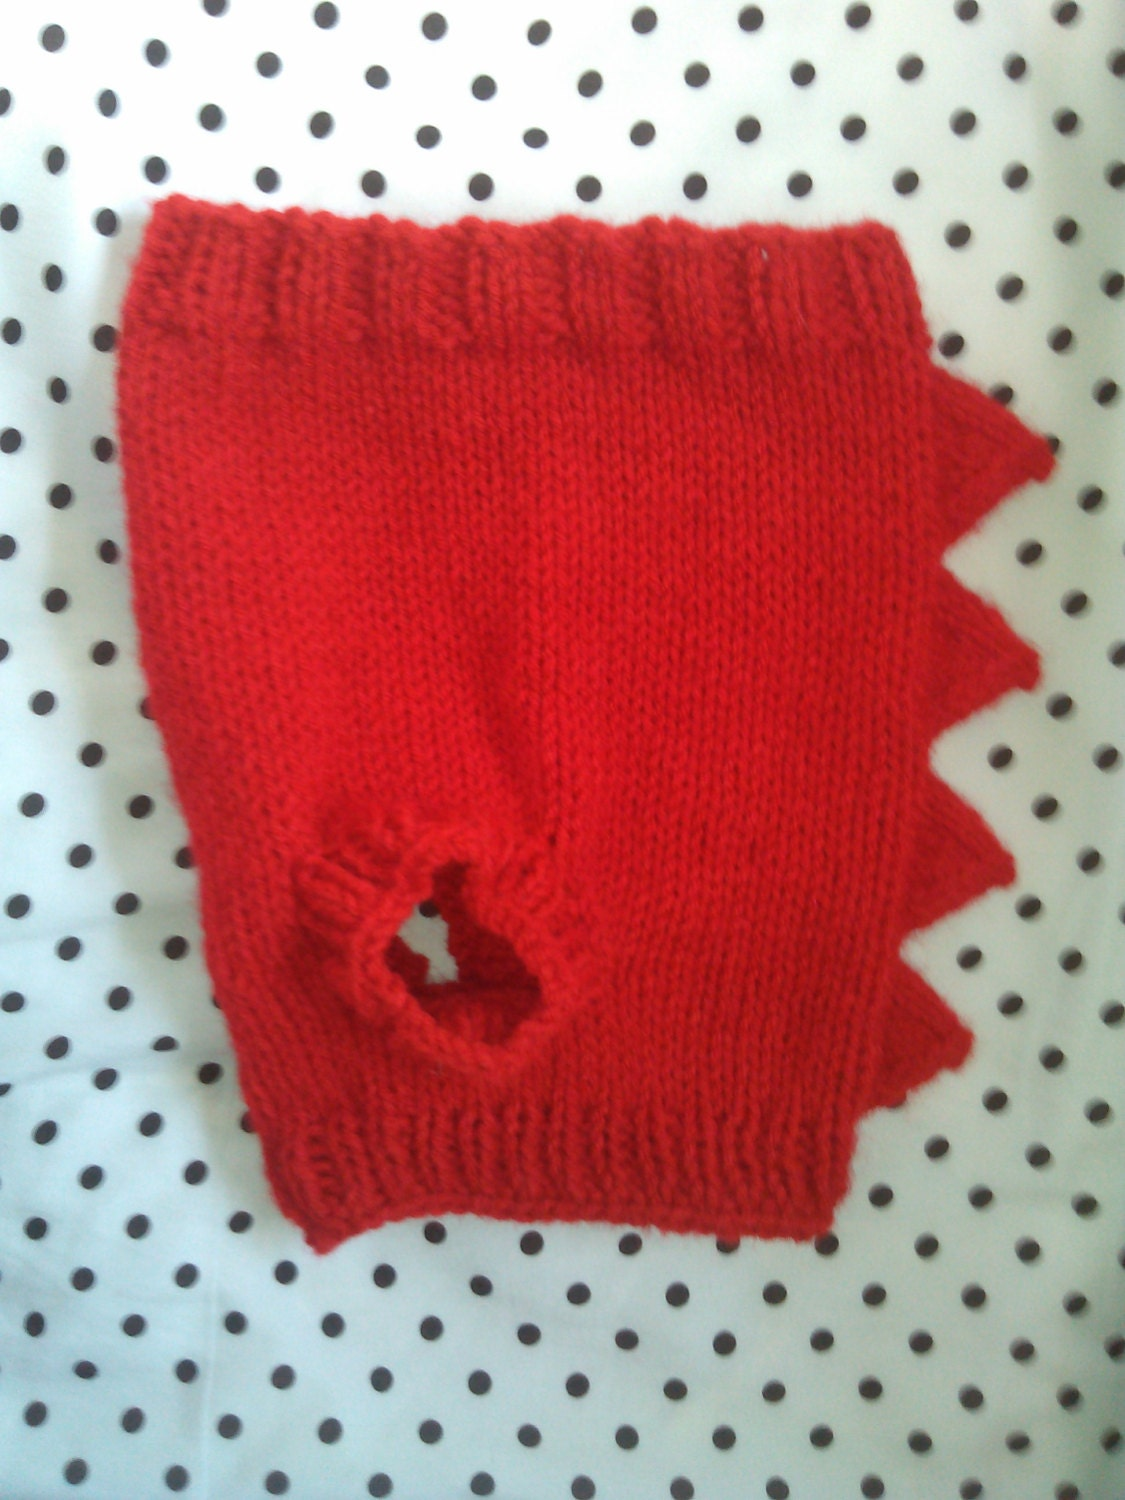 Hand Knit One-Size-Fits-Most Red Dinosaur Sweater for Cats or Small ...